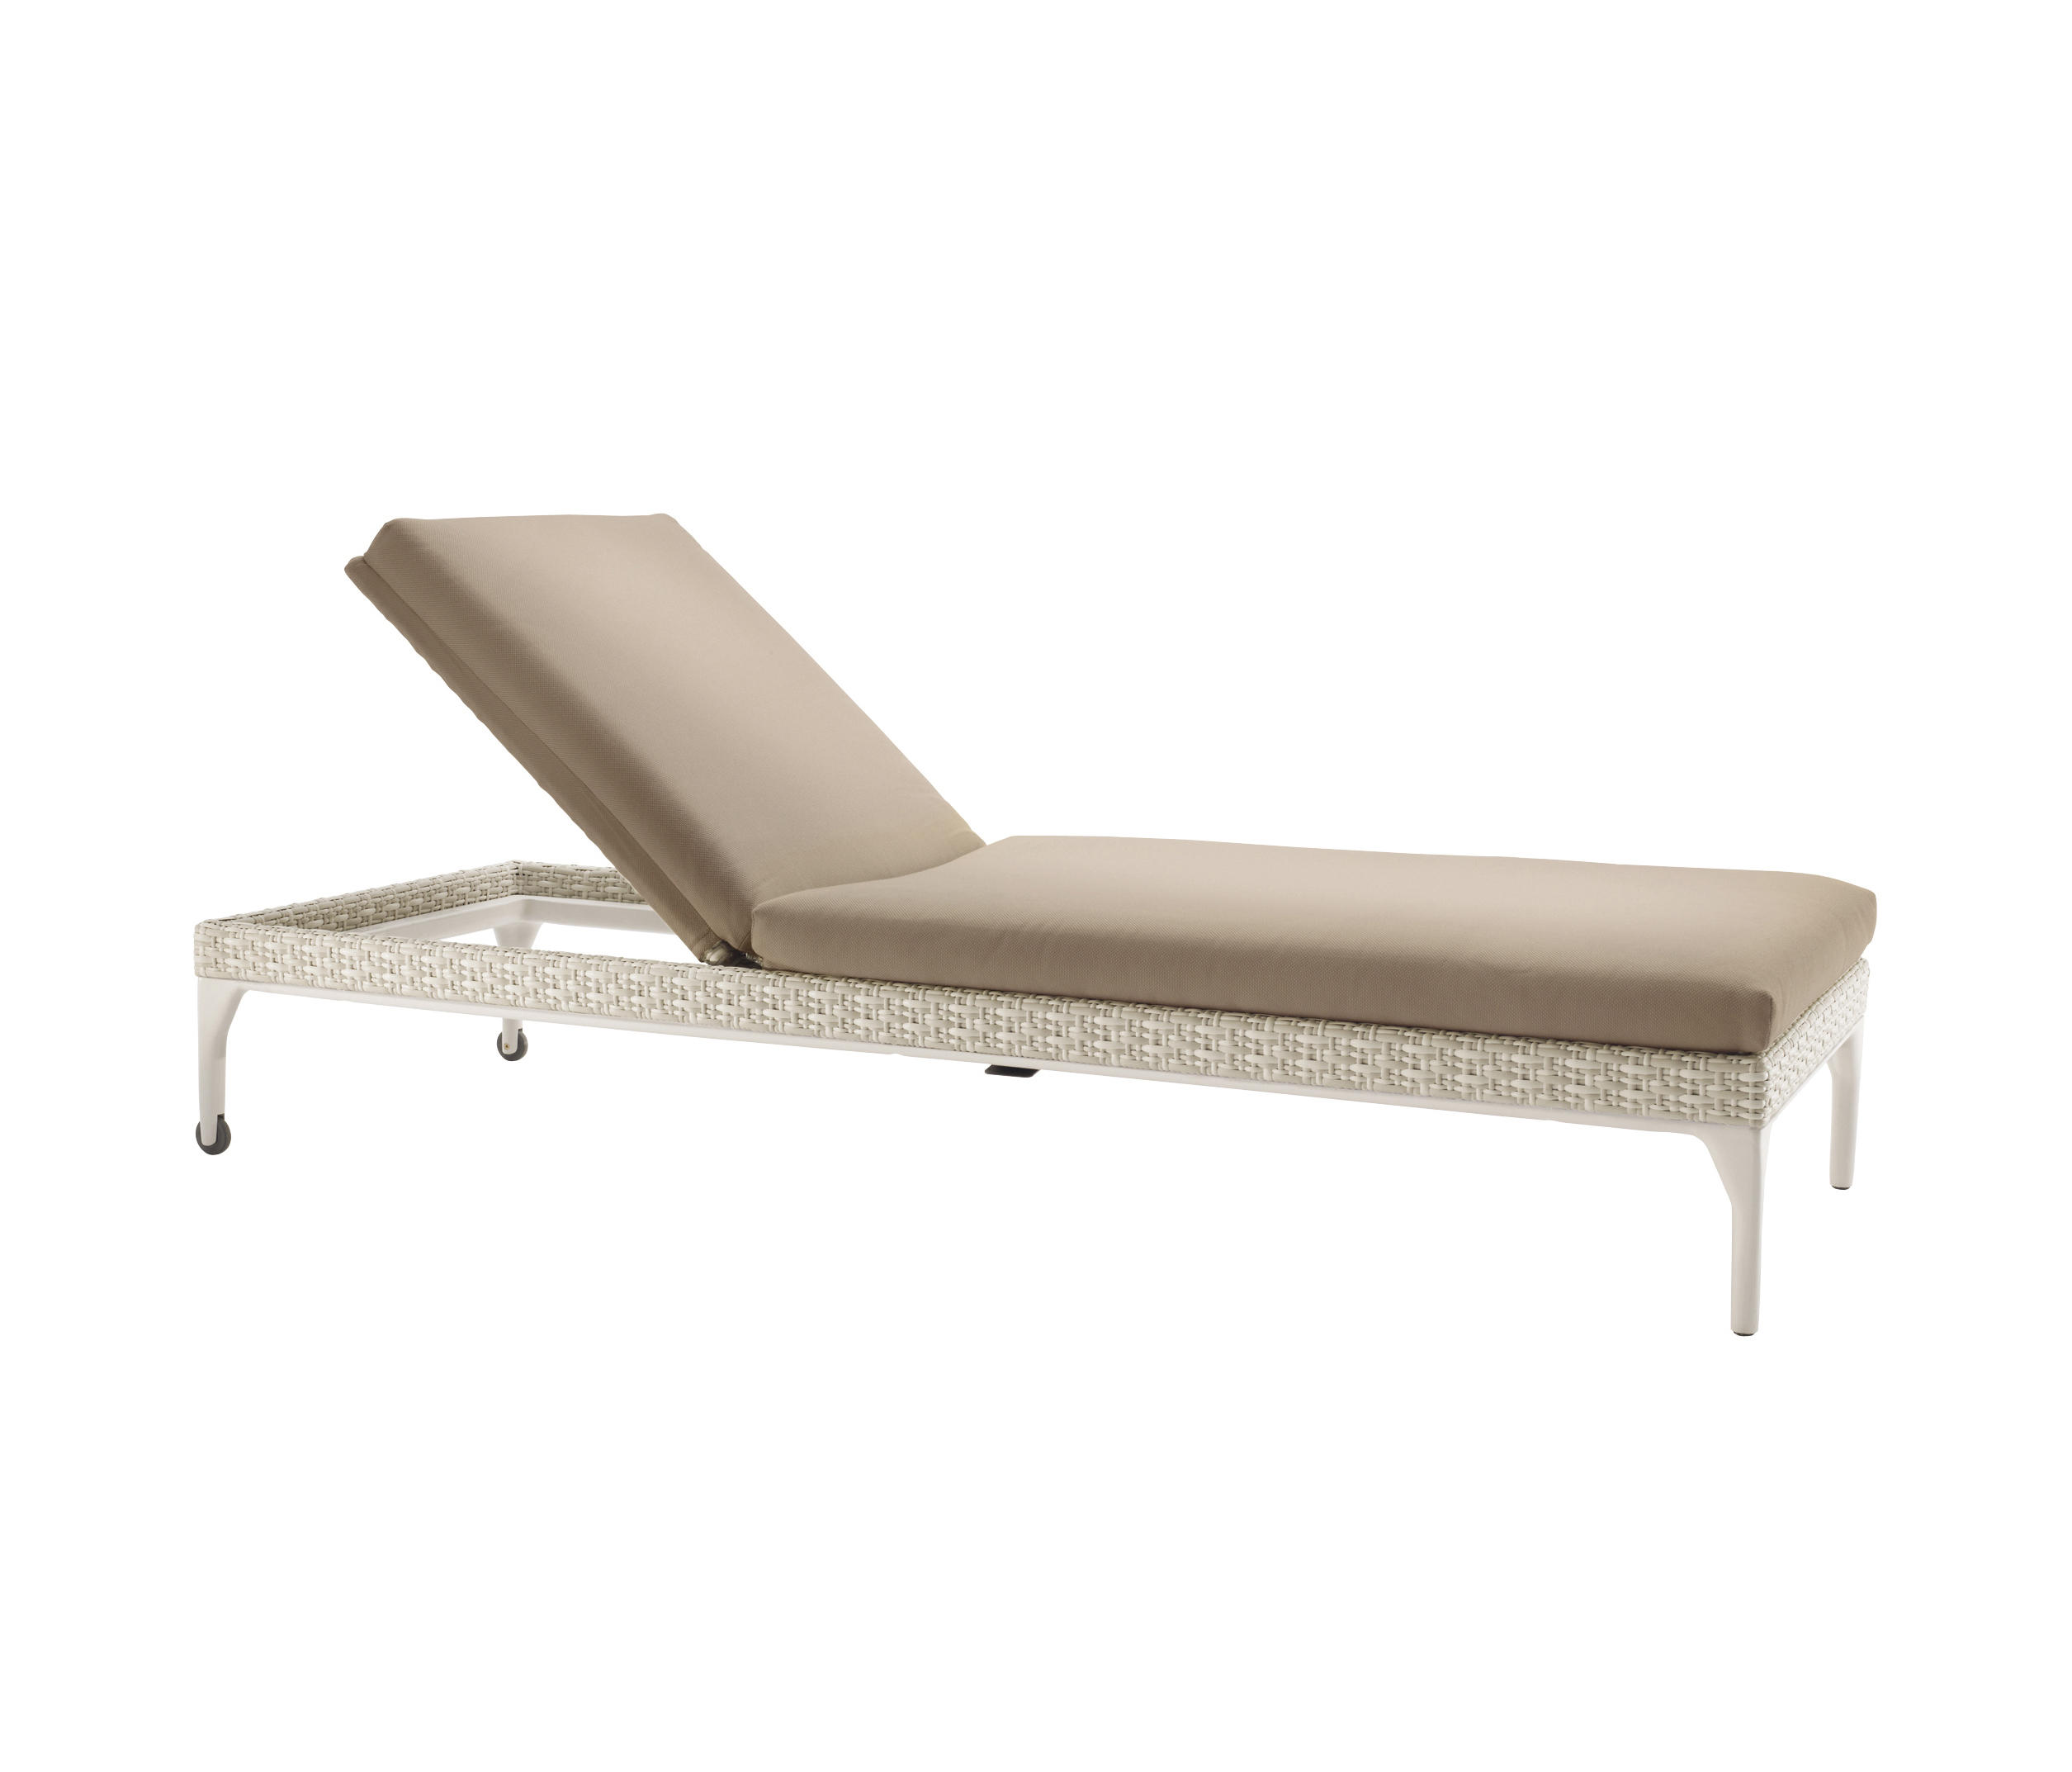 Mu beach chair sun loungers from dedon architonic for Beach chaise longue